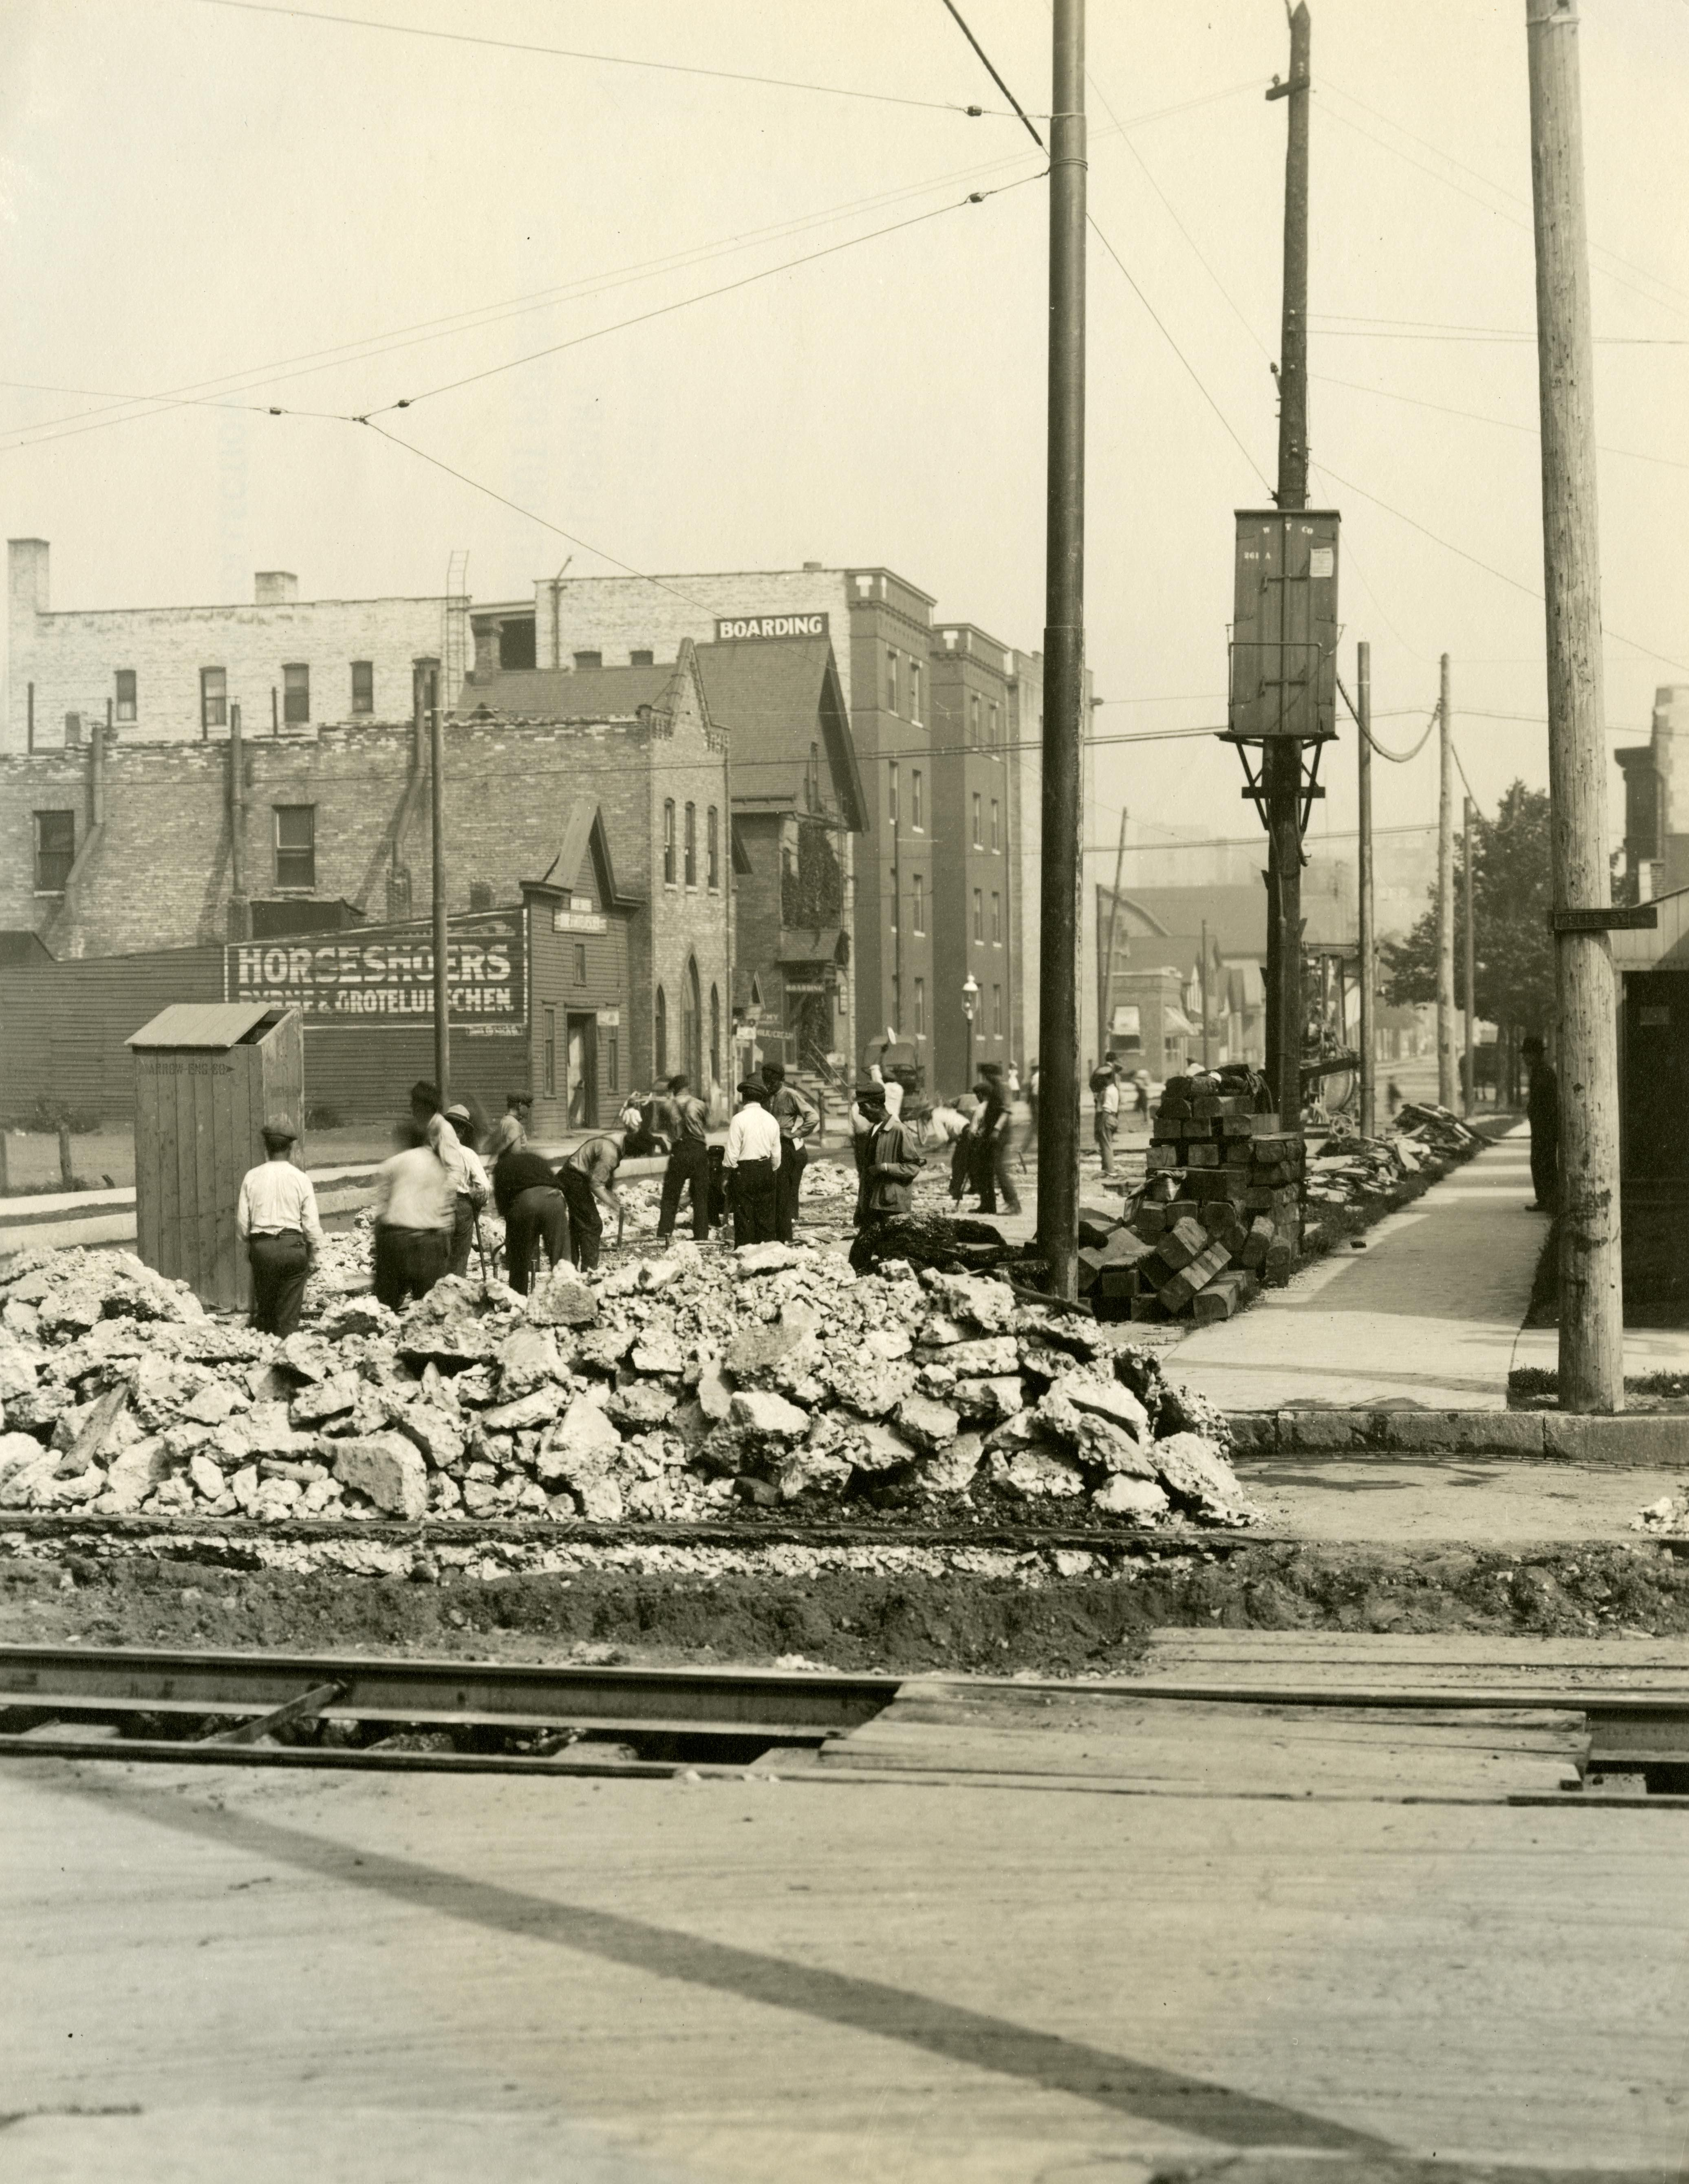 <table class=&quot;lightbox&quot;><tr><td colspan=2 class=&quot;lightbox-title&quot;>Building Milwaukee's Roads</td></tr><tr><td colspan=2 class=&quot;lightbox-caption&quot;>Men working on building the road at North 7th Street and West Wells in this 1913 photograph.</td></tr><tr><td colspan=2 class=&quot;lightbox-spacer&quot;></td></tr><tr class=&quot;lightbox-detail&quot;><td class=&quot;cell-title&quot;>Source: </td><td class=&quot;cell-value&quot;>From the Historic Photo Collection of the Milwaukee Public Library. Reprinted with permission. <br /><a href=&quot;http://content.mpl.org/cdm/singleitem/collection/HstoricPho/id/9859/rec/4&quot; target=&quot;_blank&quot;>Milwaukee Public Library</a></td></tr><tr class=&quot;filler-row&quot;><td colspan=2>&nbsp;</td></tr></table>